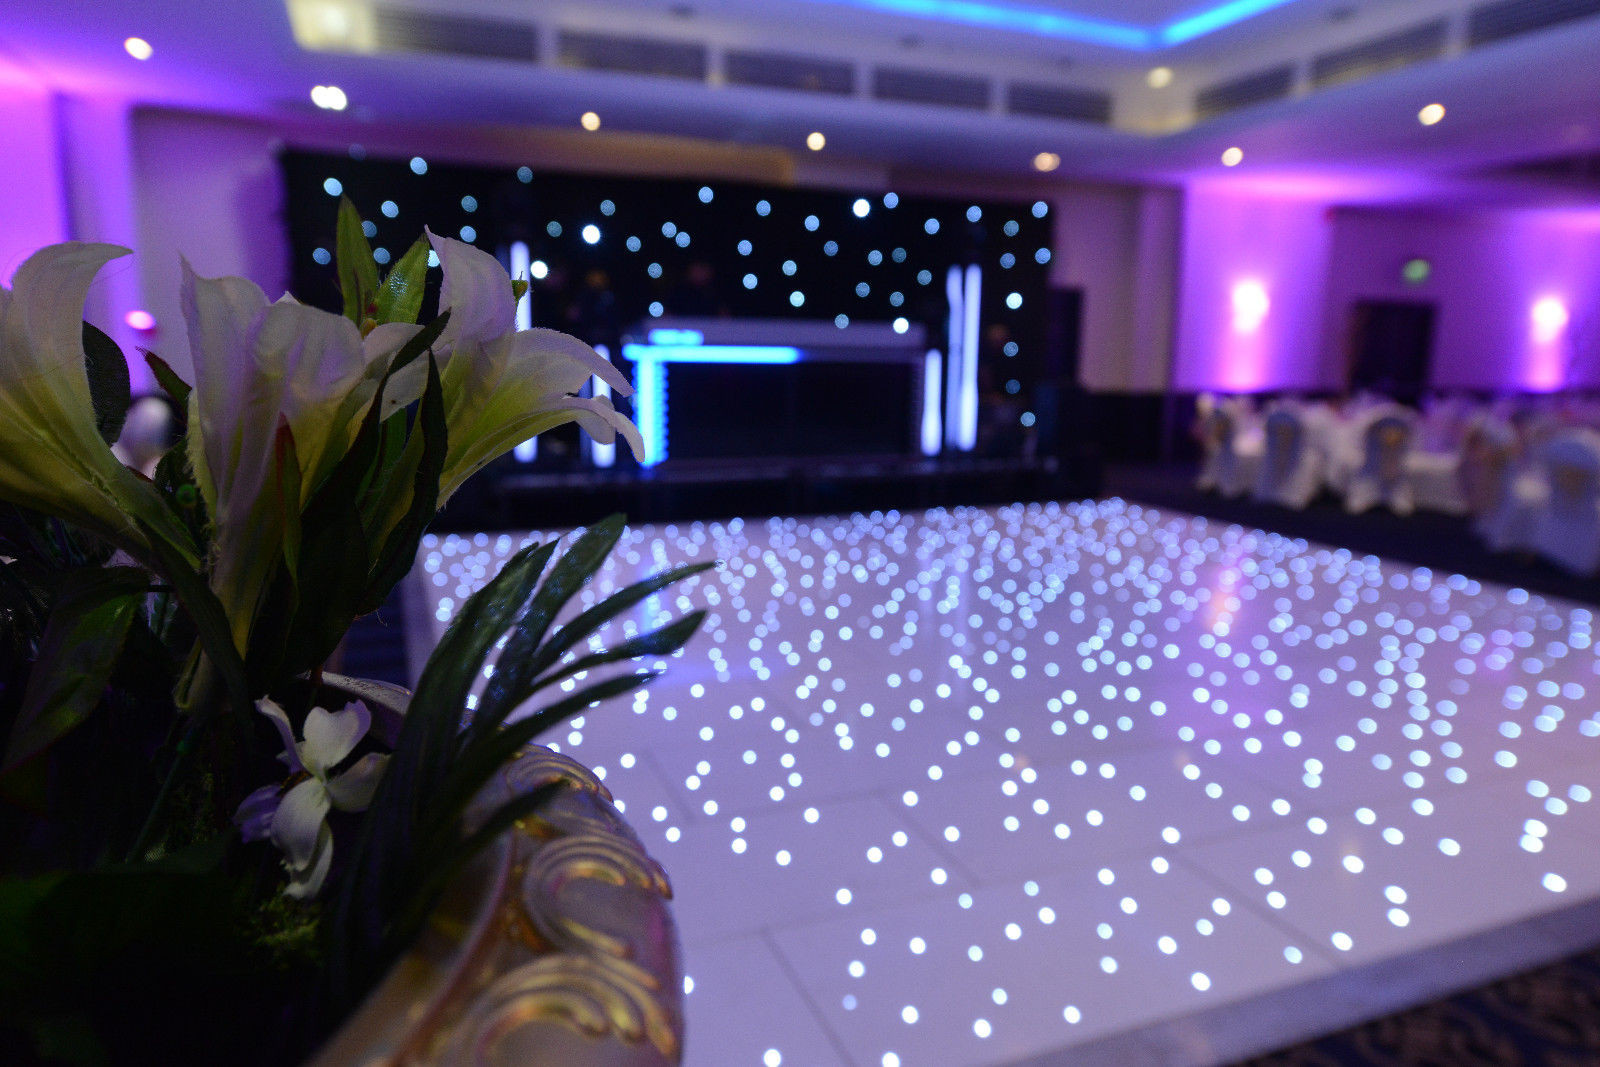 Starlit Twinkle LED Dance Floor